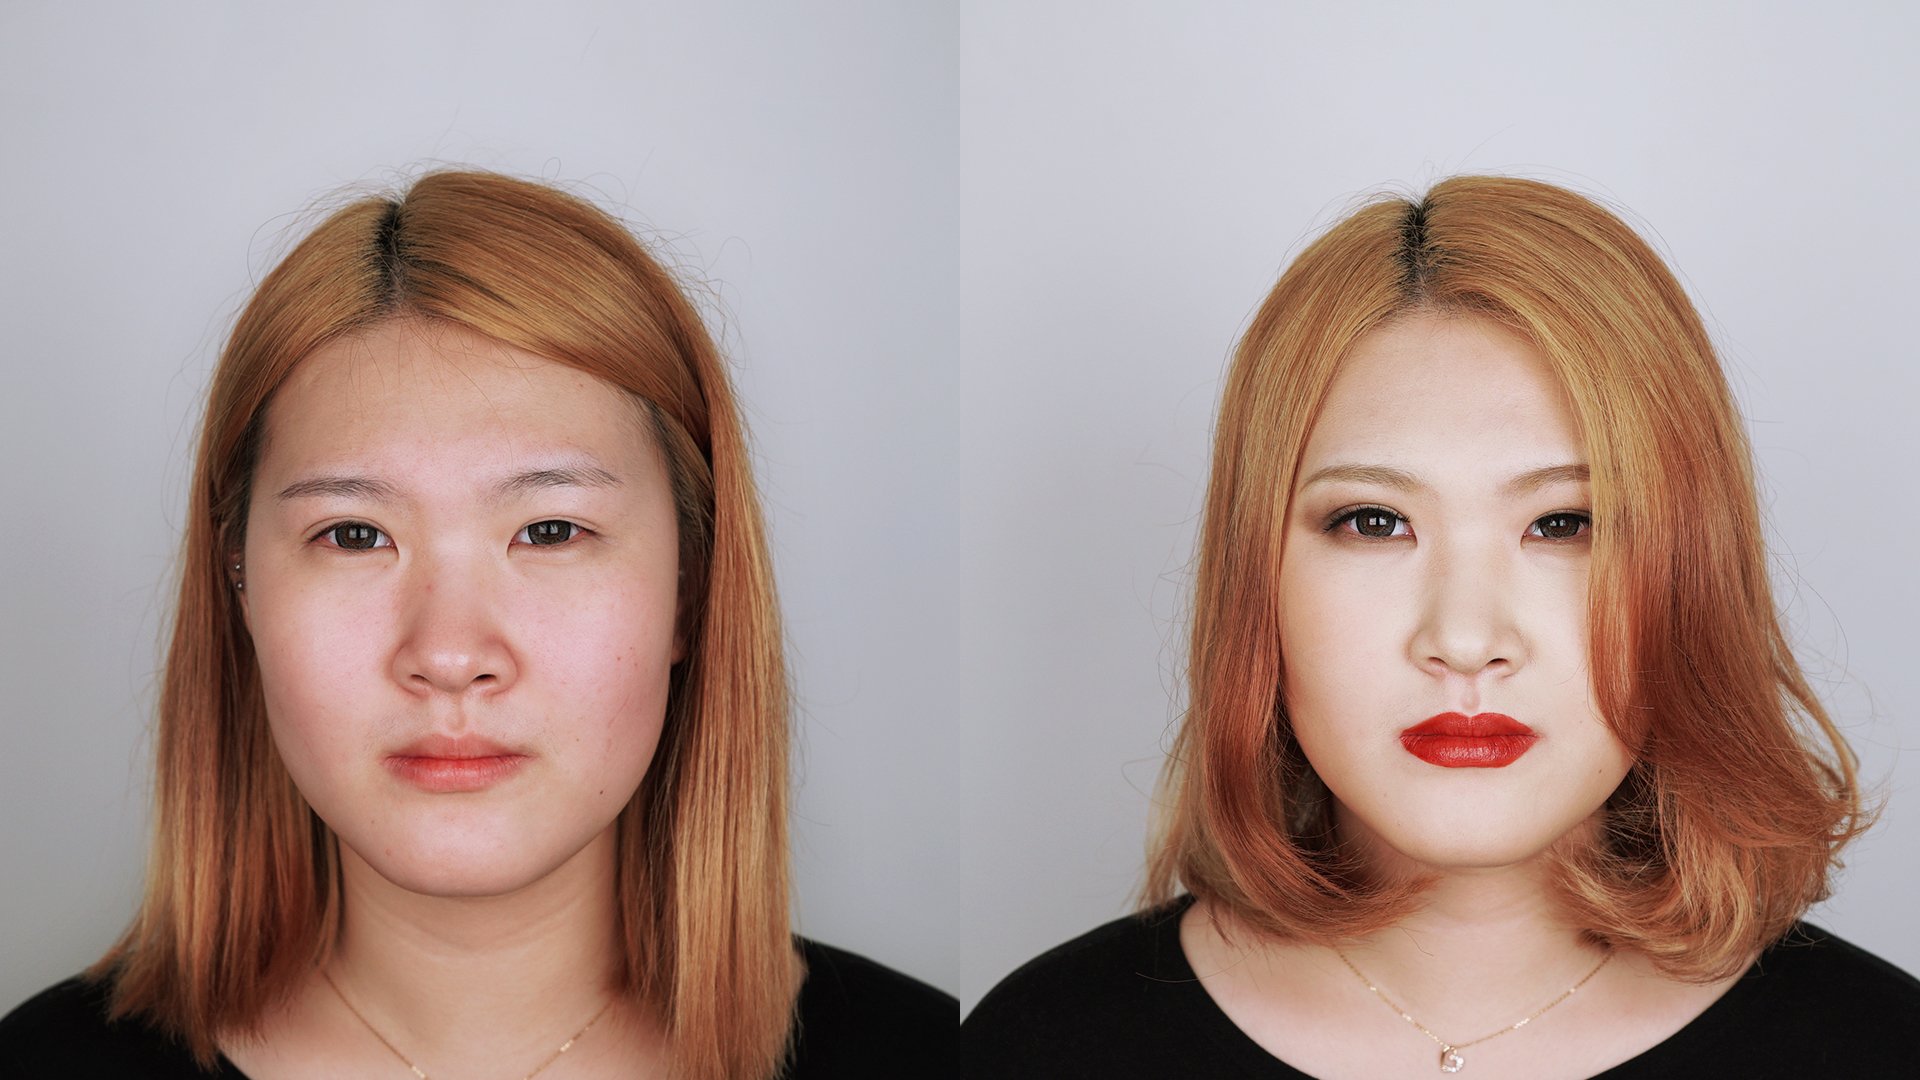 Jolse before and after #4 Smoky red makeup